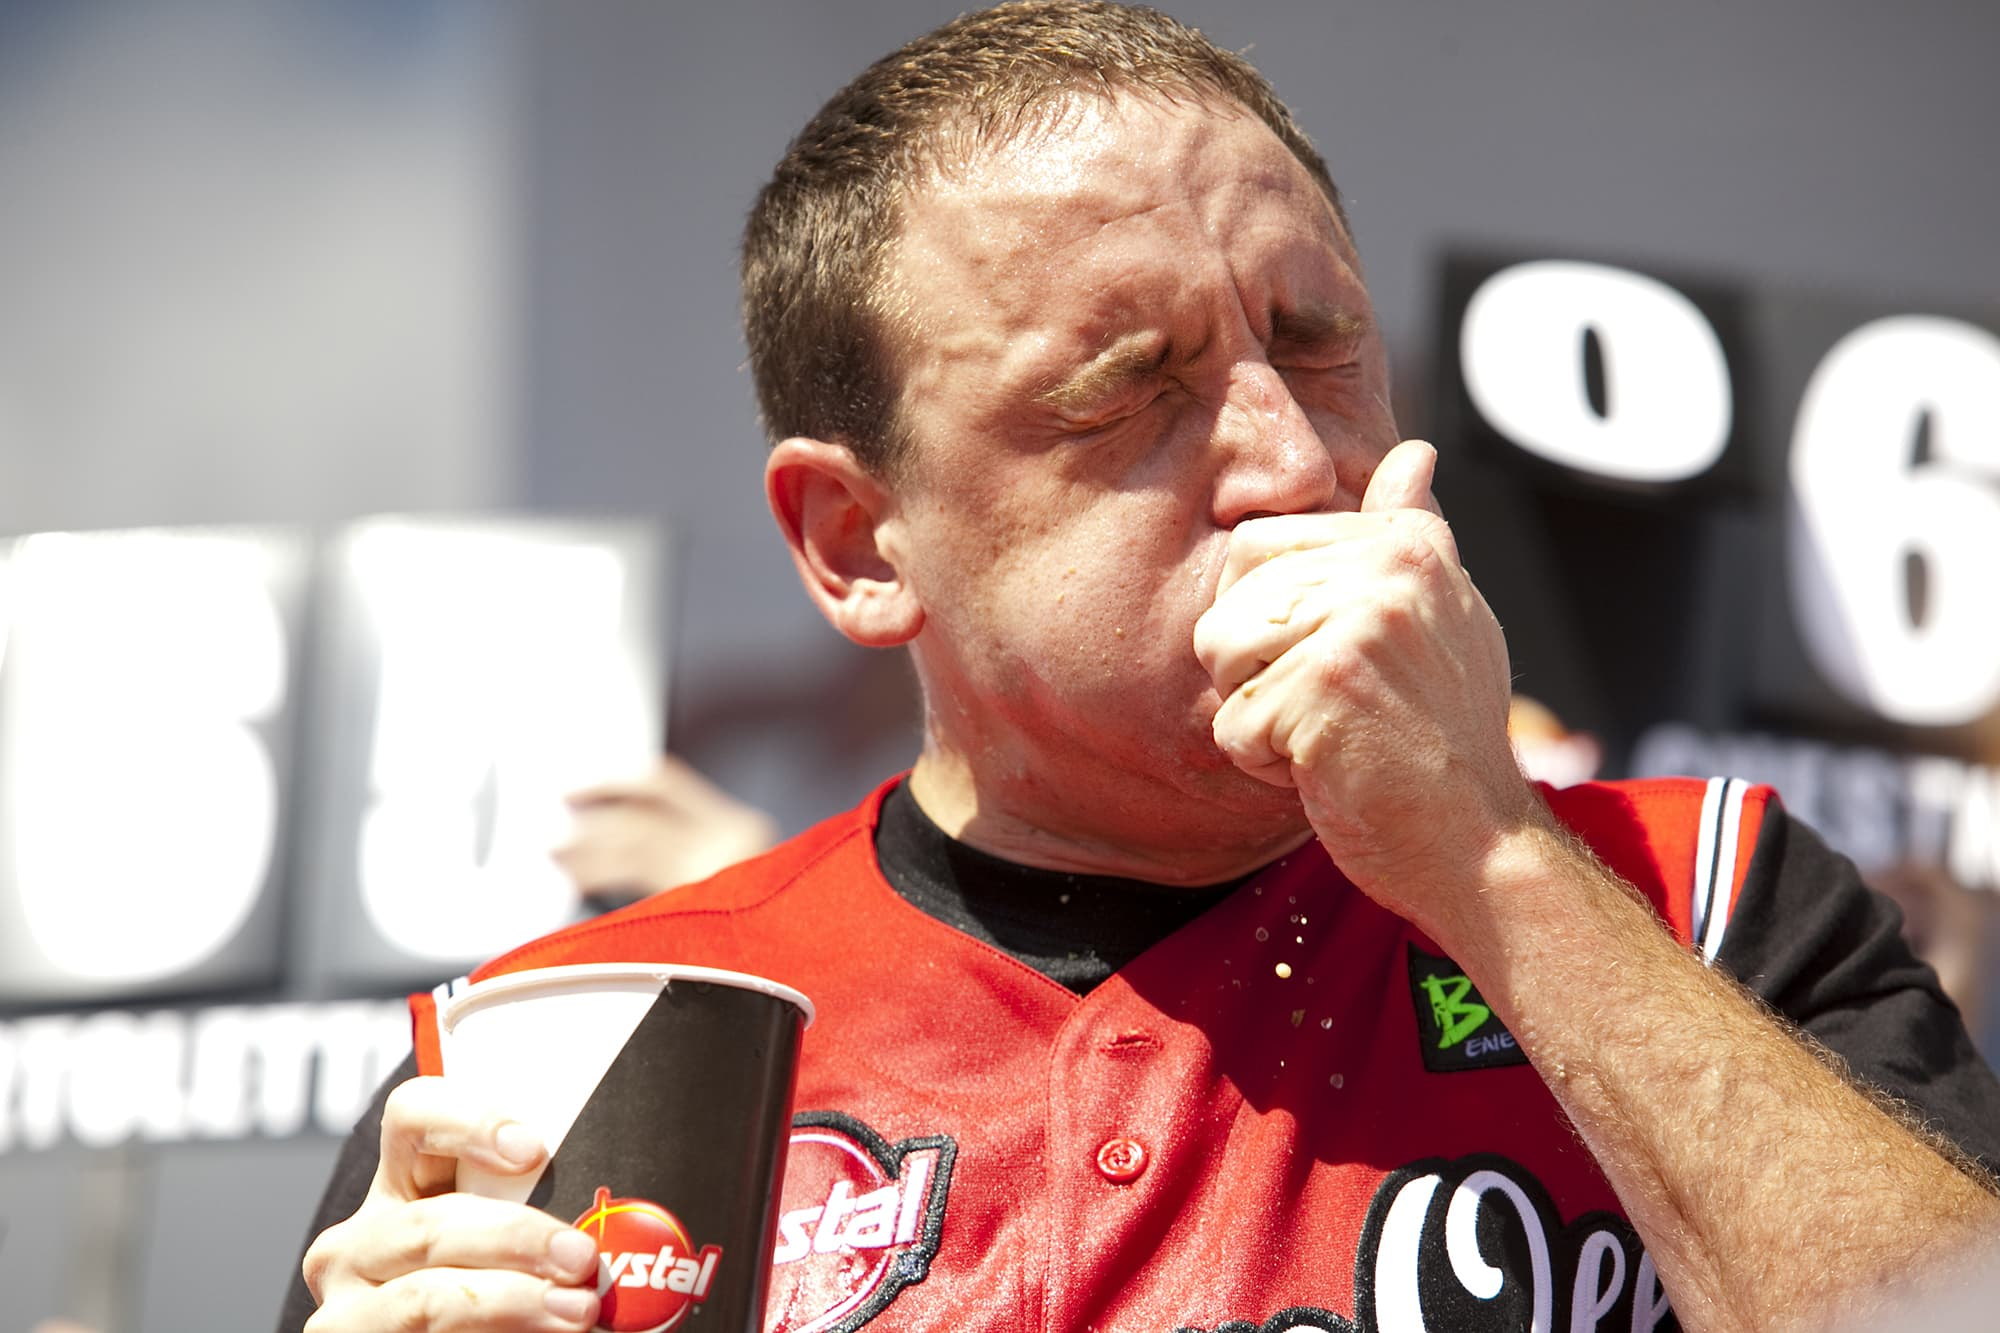 Joey Chestnut eats at the Krystal Square Off VI Hamburger eating Contest in Chattanooga, Tennessee.